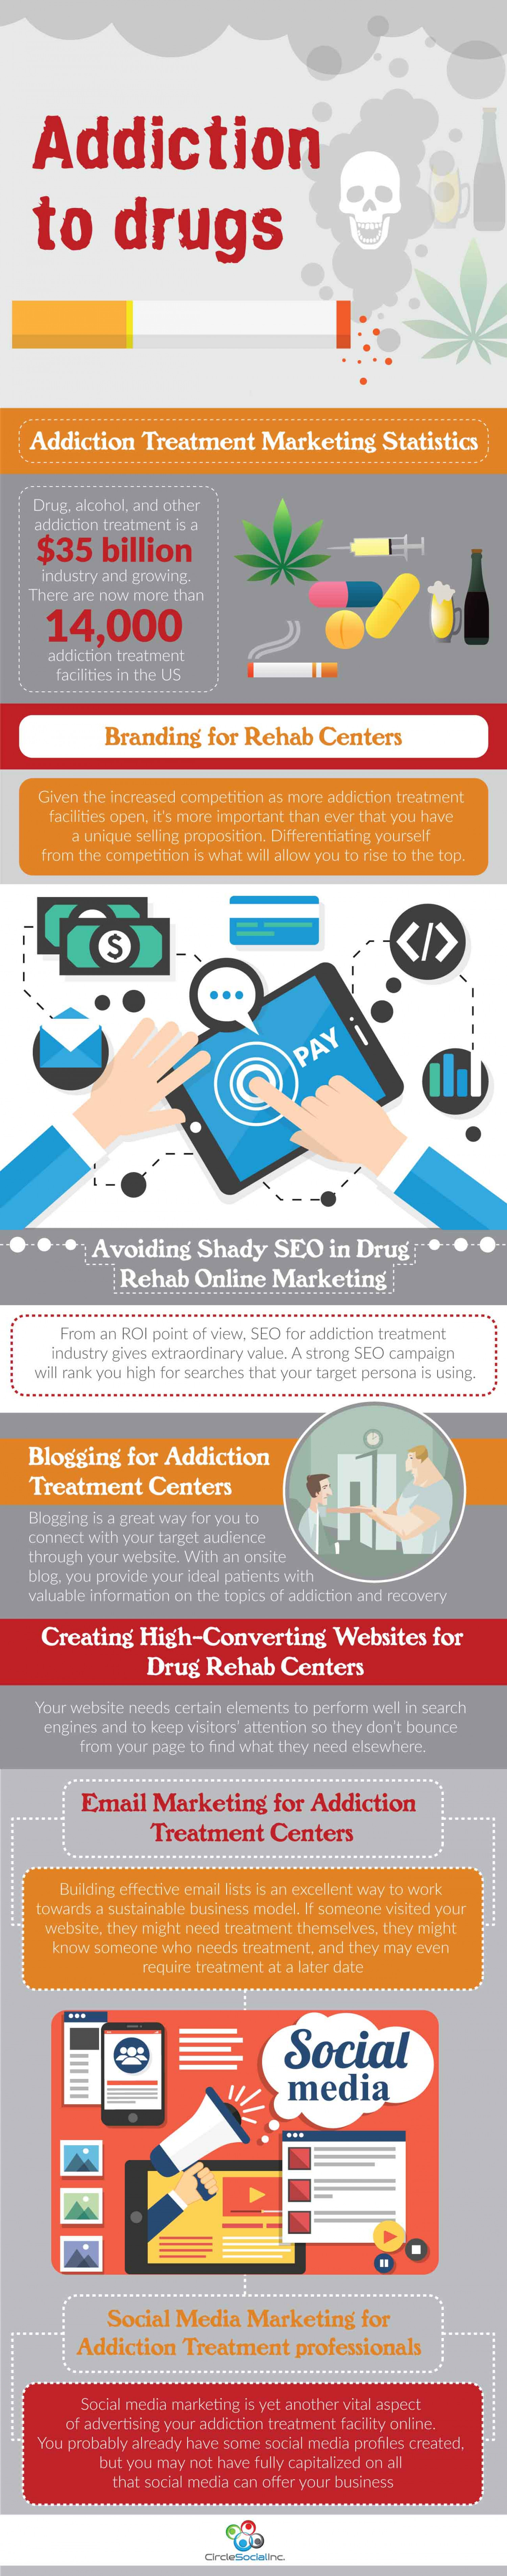 Addiction to Drugs Infographic